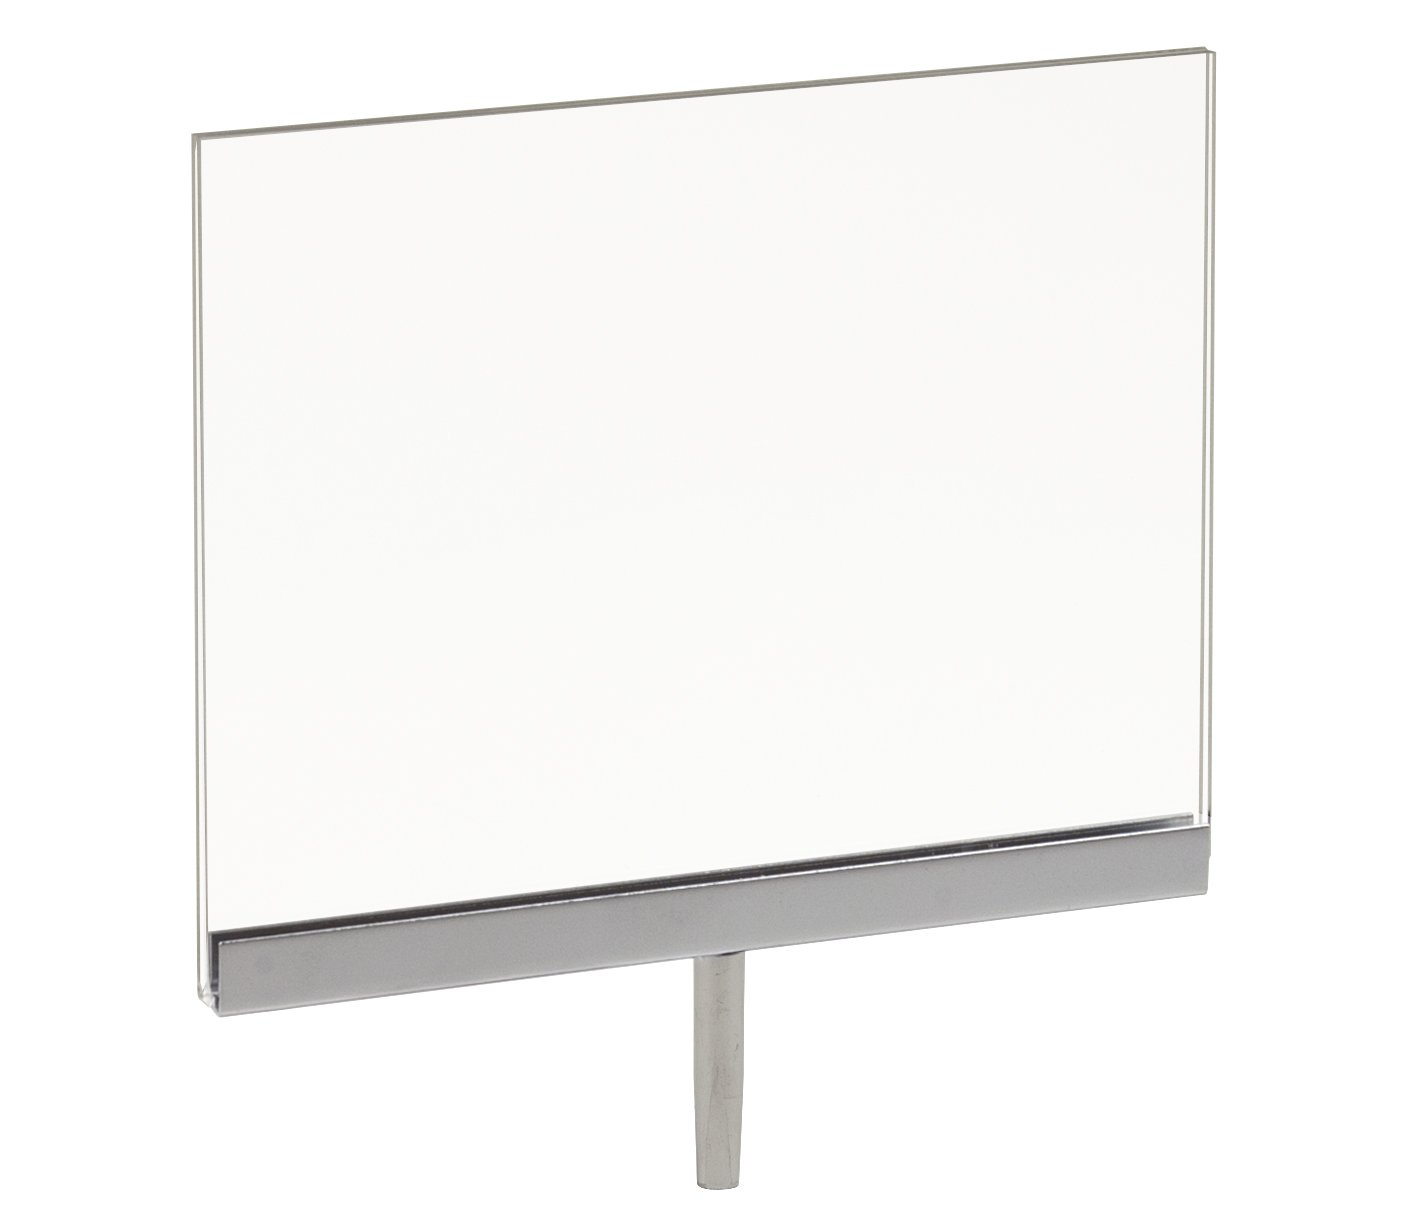 """7"""" Width x 5-1/2"""" Height Acrylic Sign Holder with 1-1/2"""" Welded Swedge Stem"""